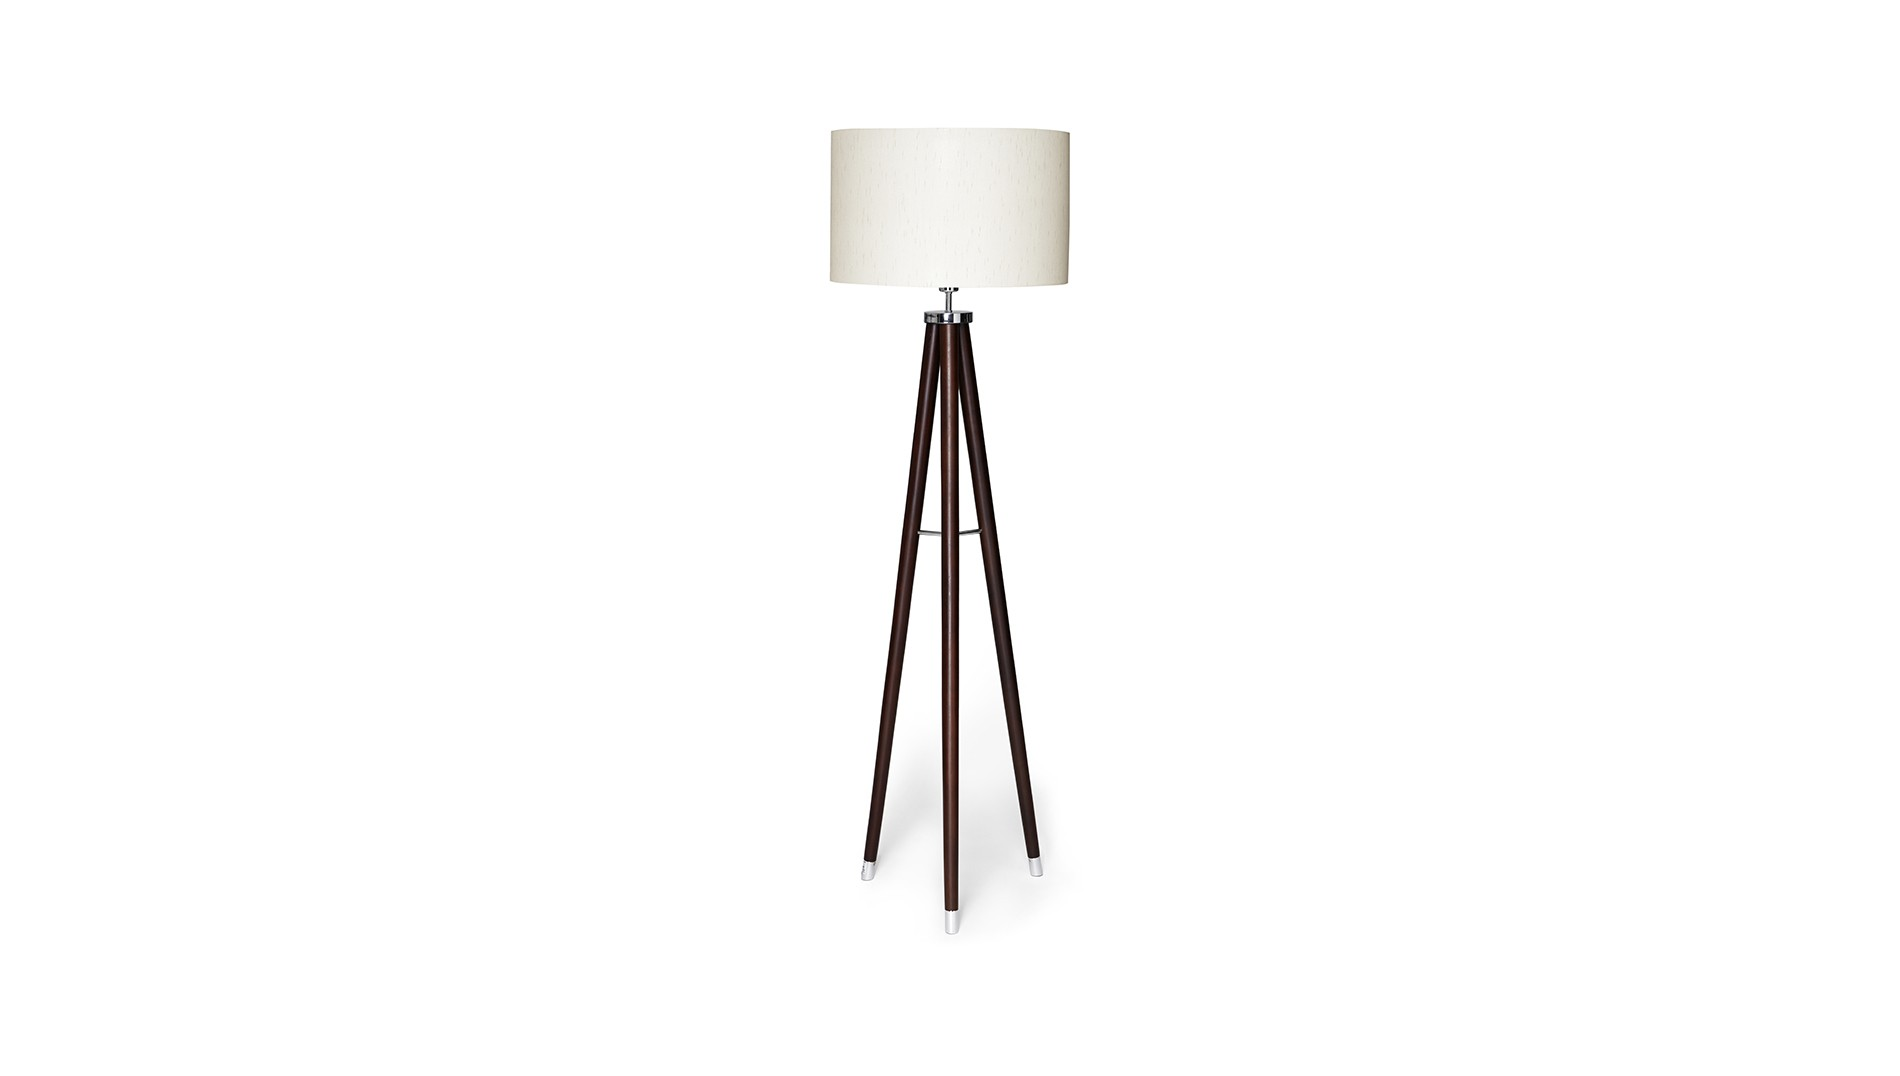 Awesome Tripod Lamp for Interior Lighting Ideas: Target Tripod Floor Lamp | Tripod Lamp | Wood Tripod Floor Lamp